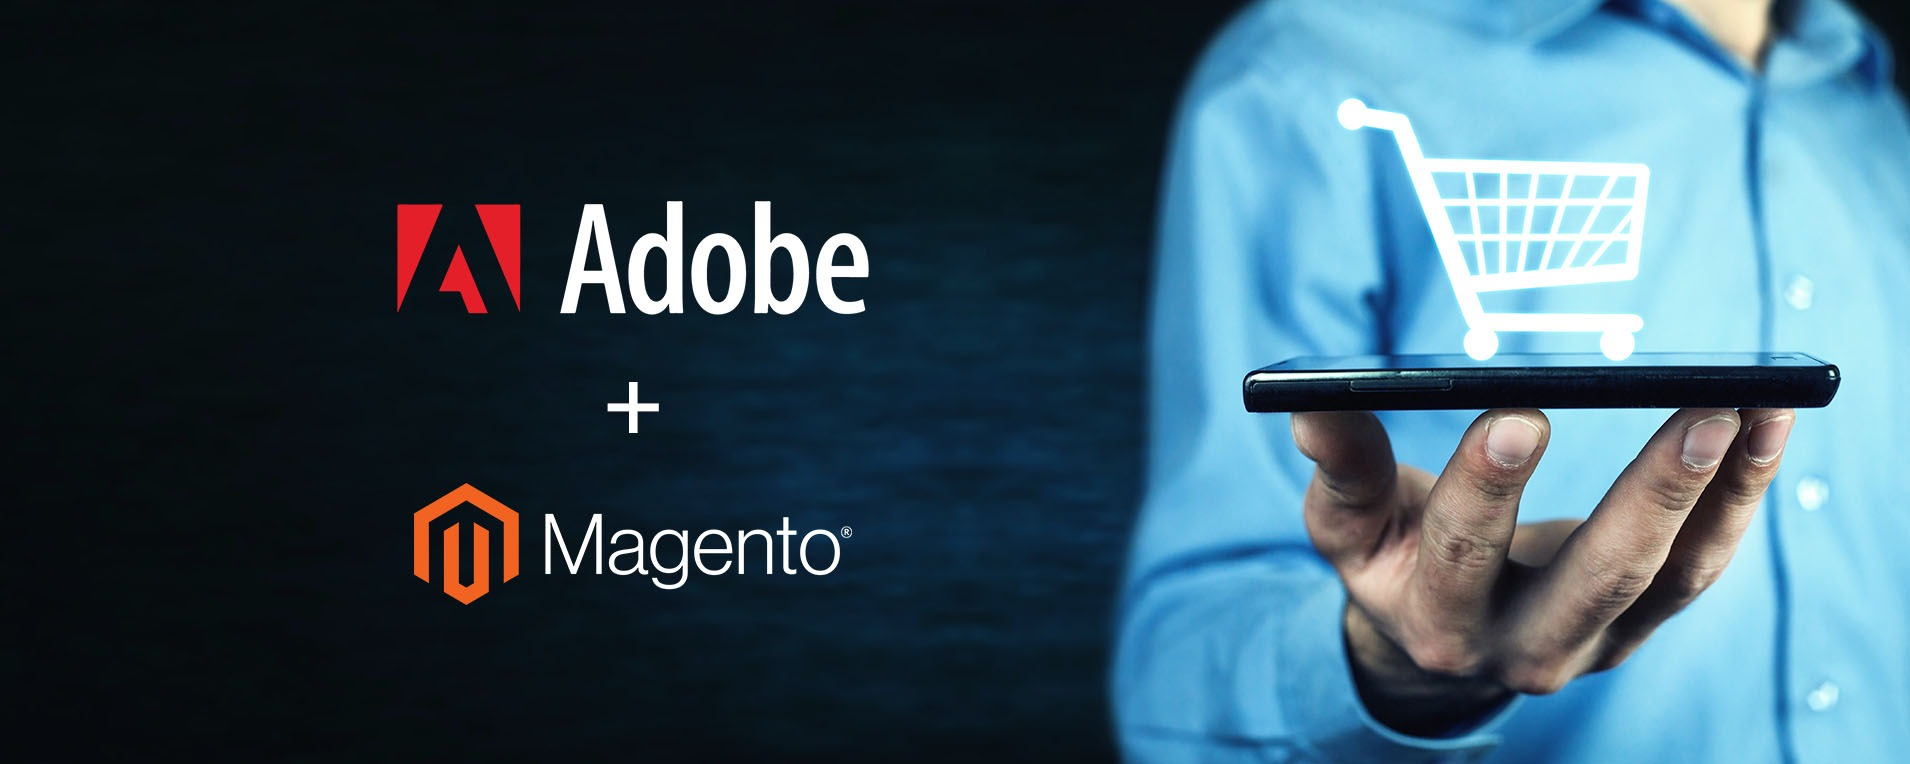 Adobe's Magento Acquisition Is Not Surprising